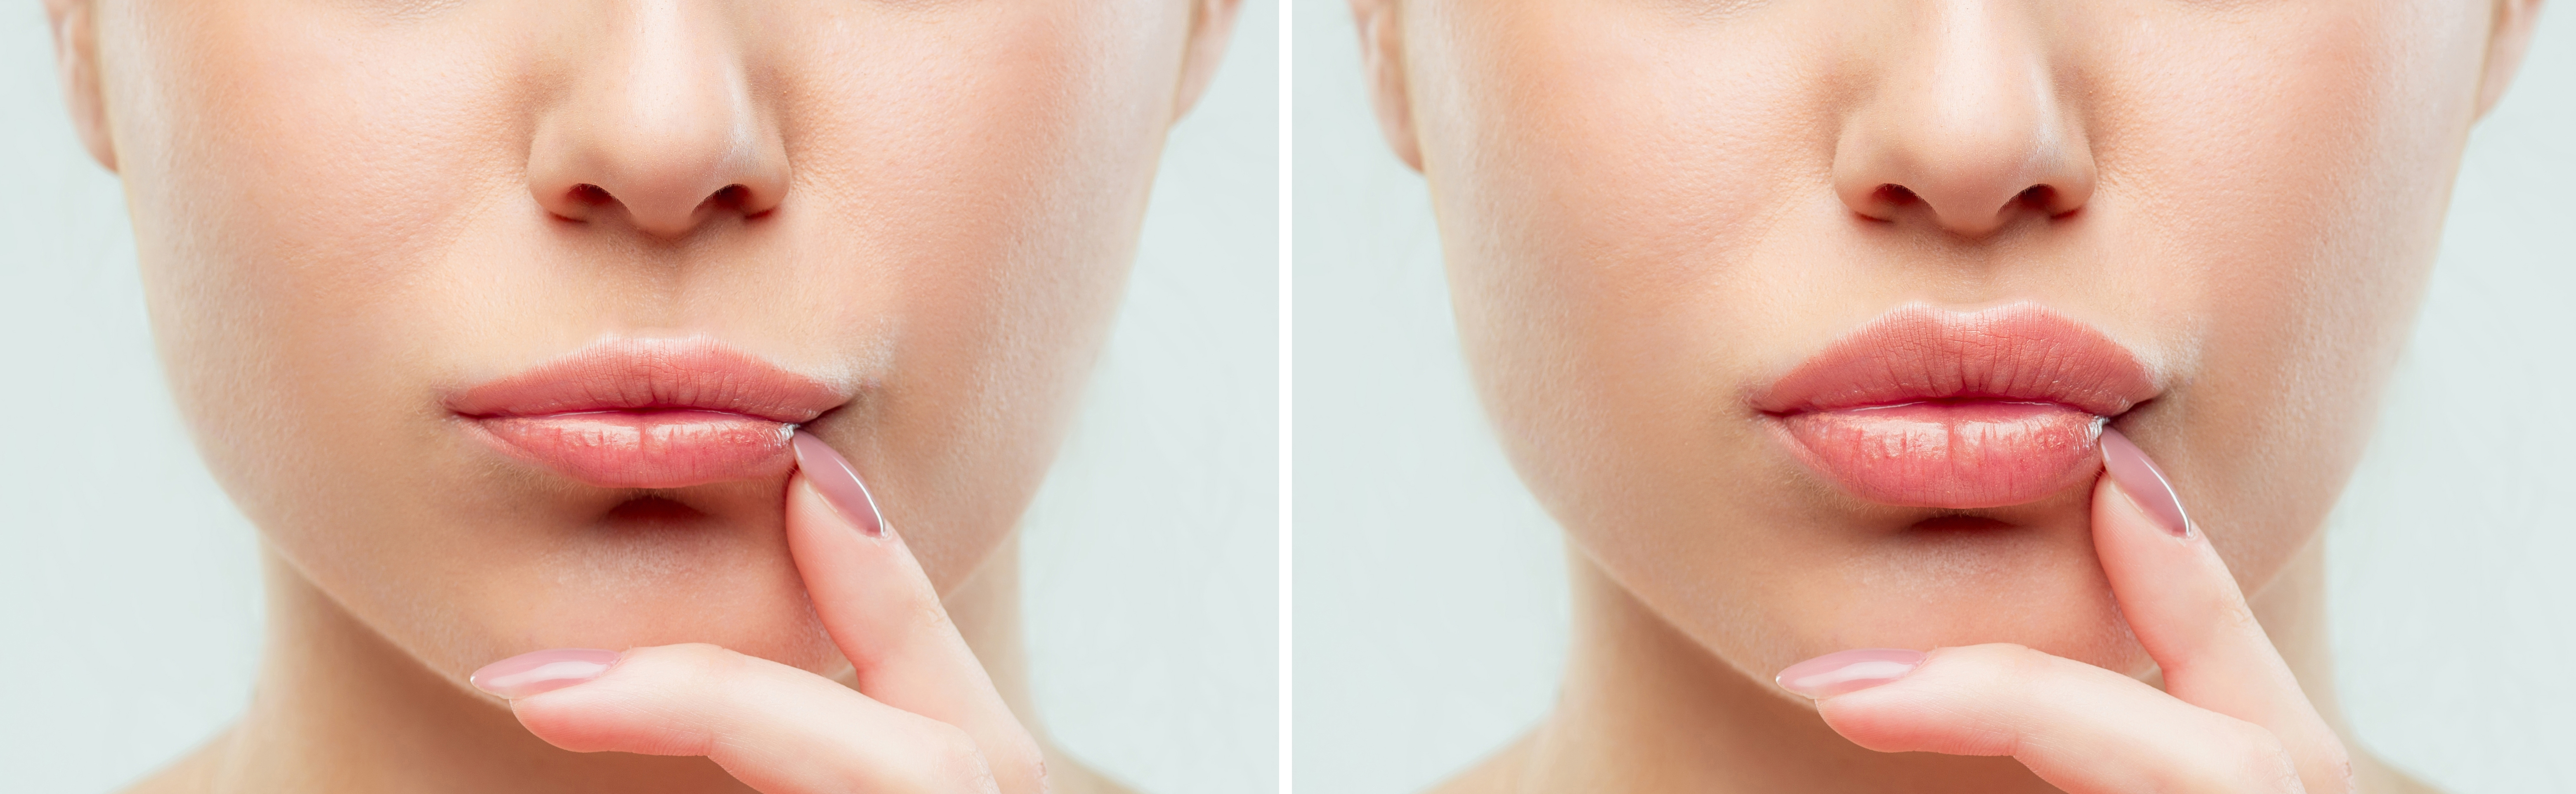 bigstock-Before-And-After-Lips-Filler-I-234503275_InPixio